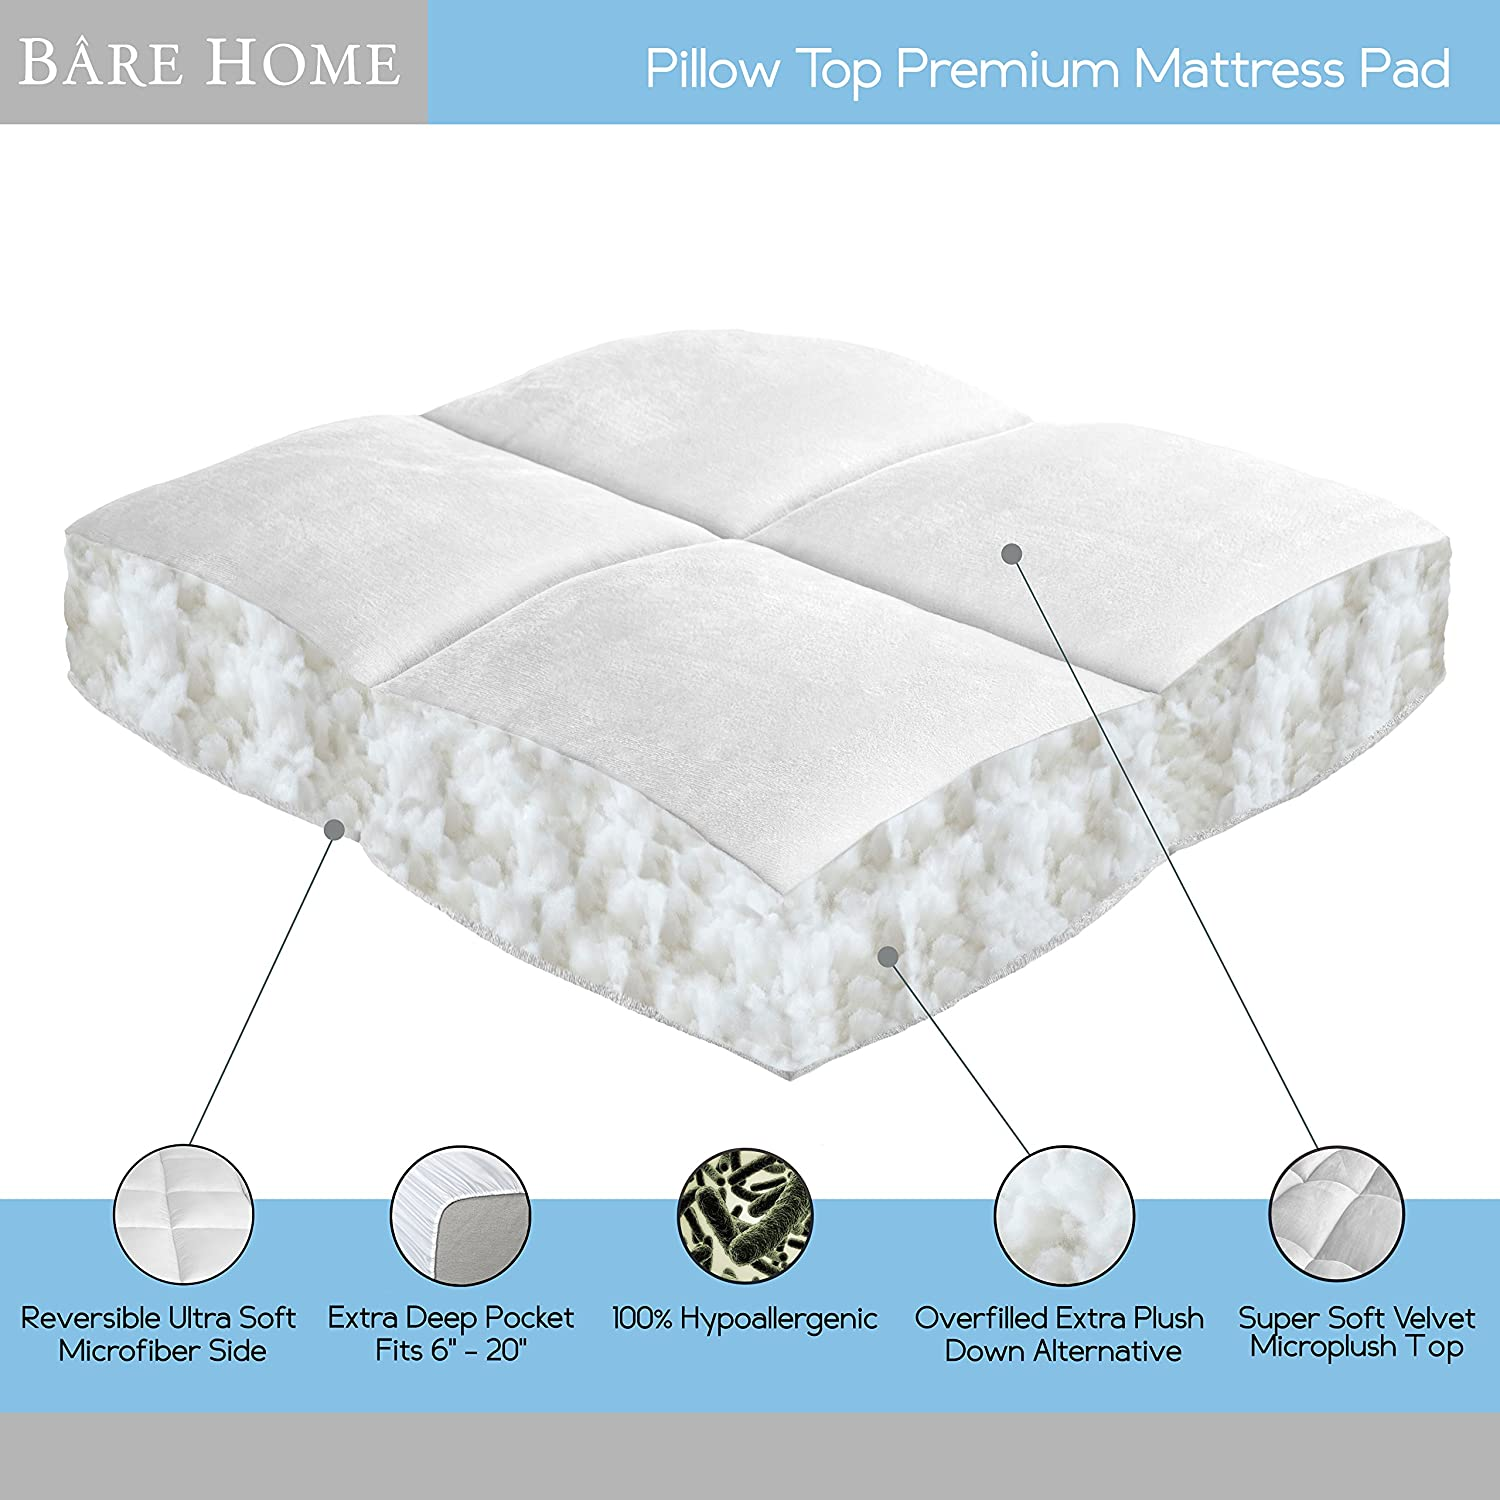 filled alternative cotton storm top down mattress pads pad pillowtop goose watch fitted cover pillow